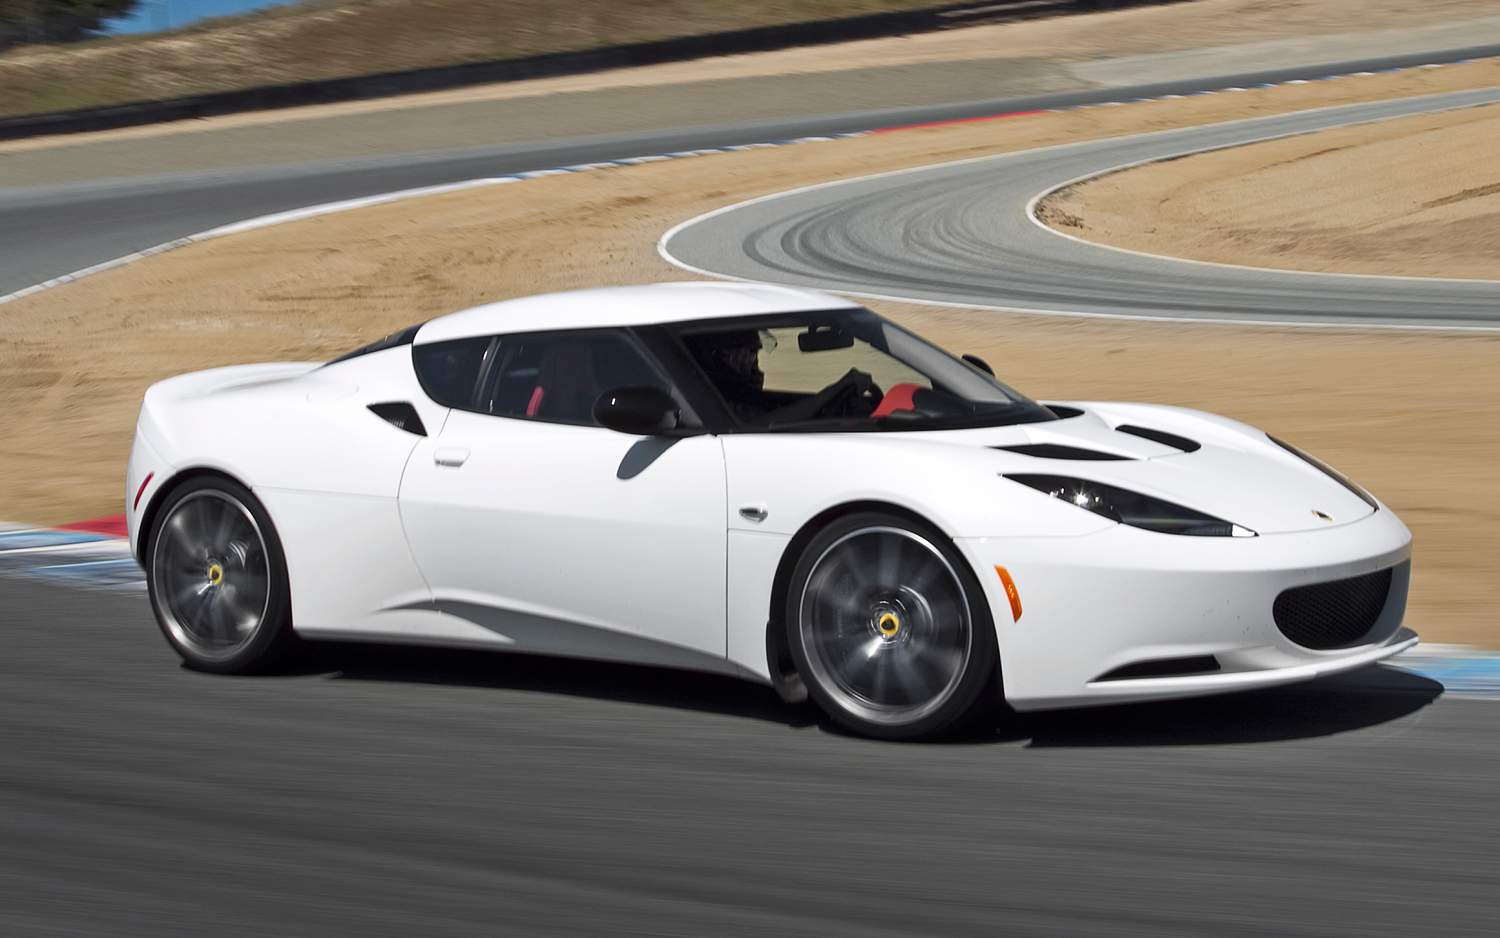 Lotus Evora 14 Cool Car Wallpaper